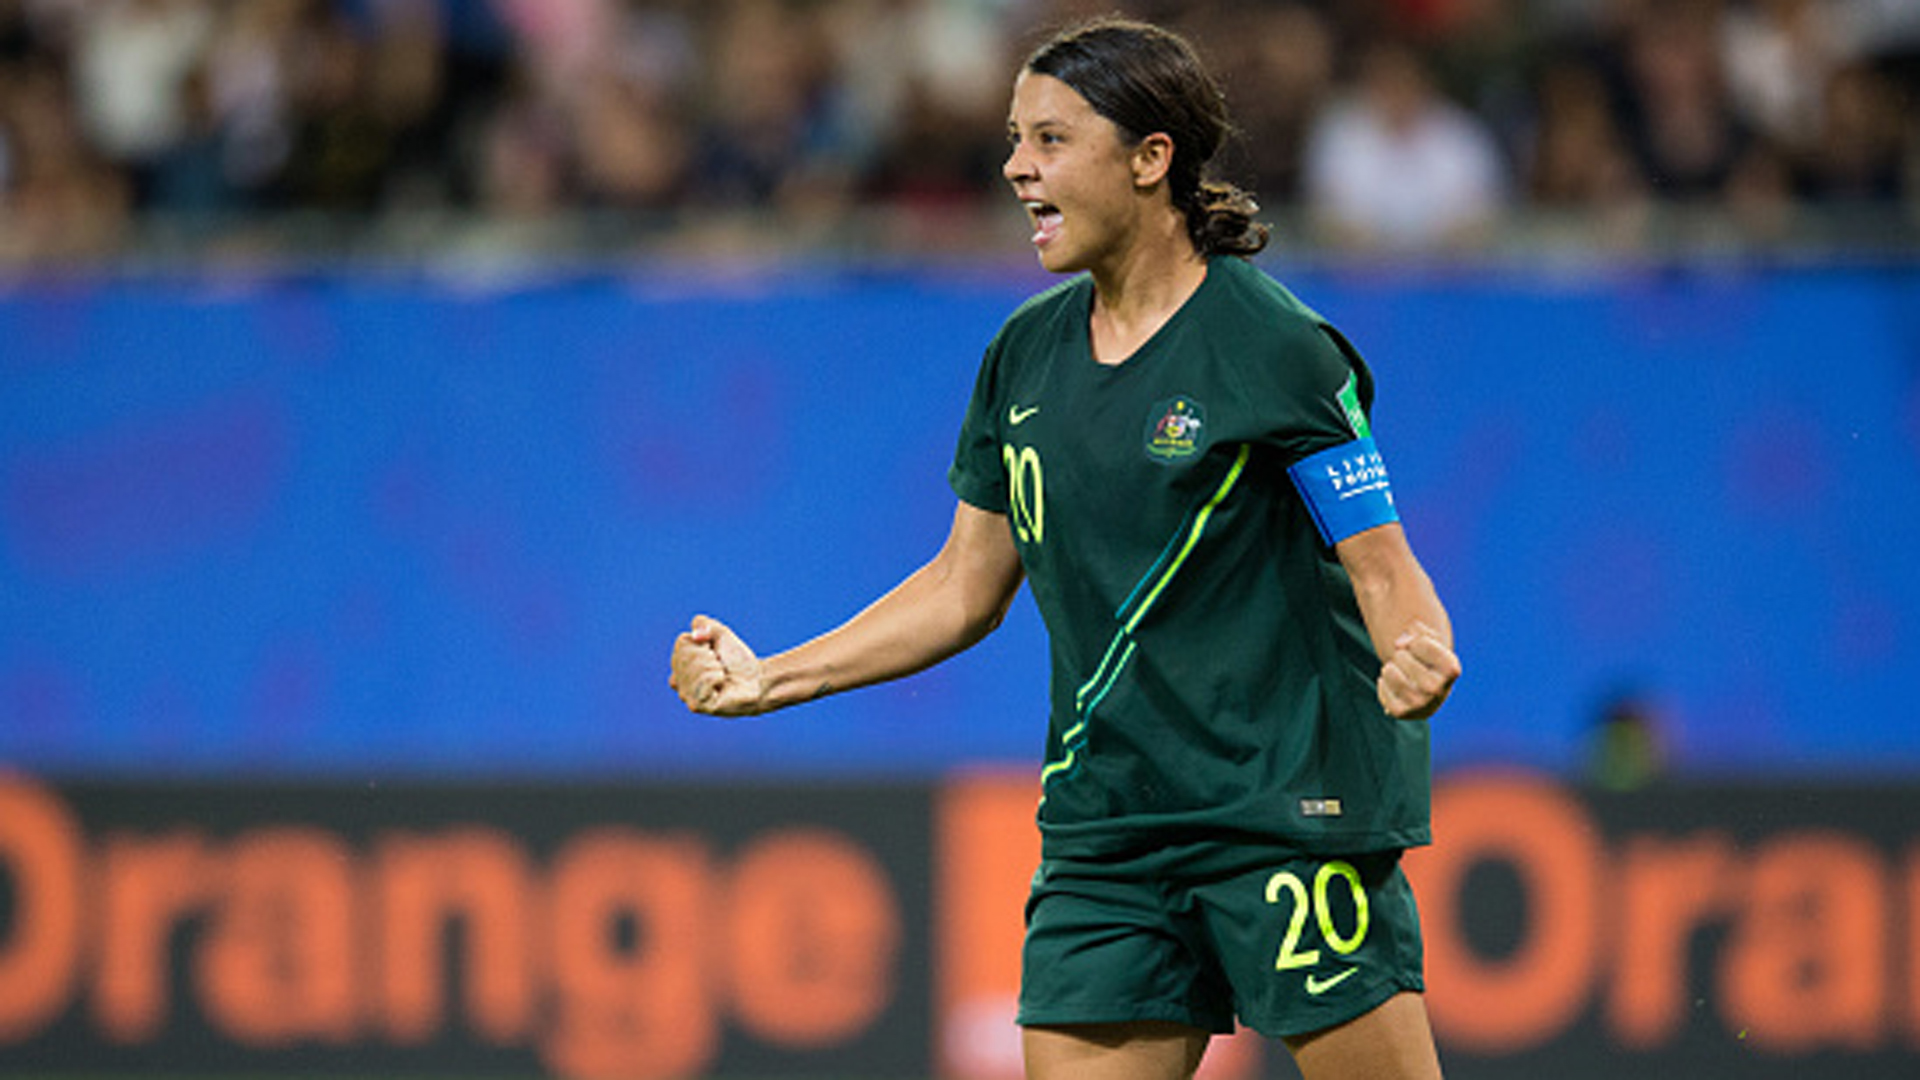 5846a4ce9 Sam Kerr has 4 goals and Australia beats Jamaica 4-1 - TSN.ca